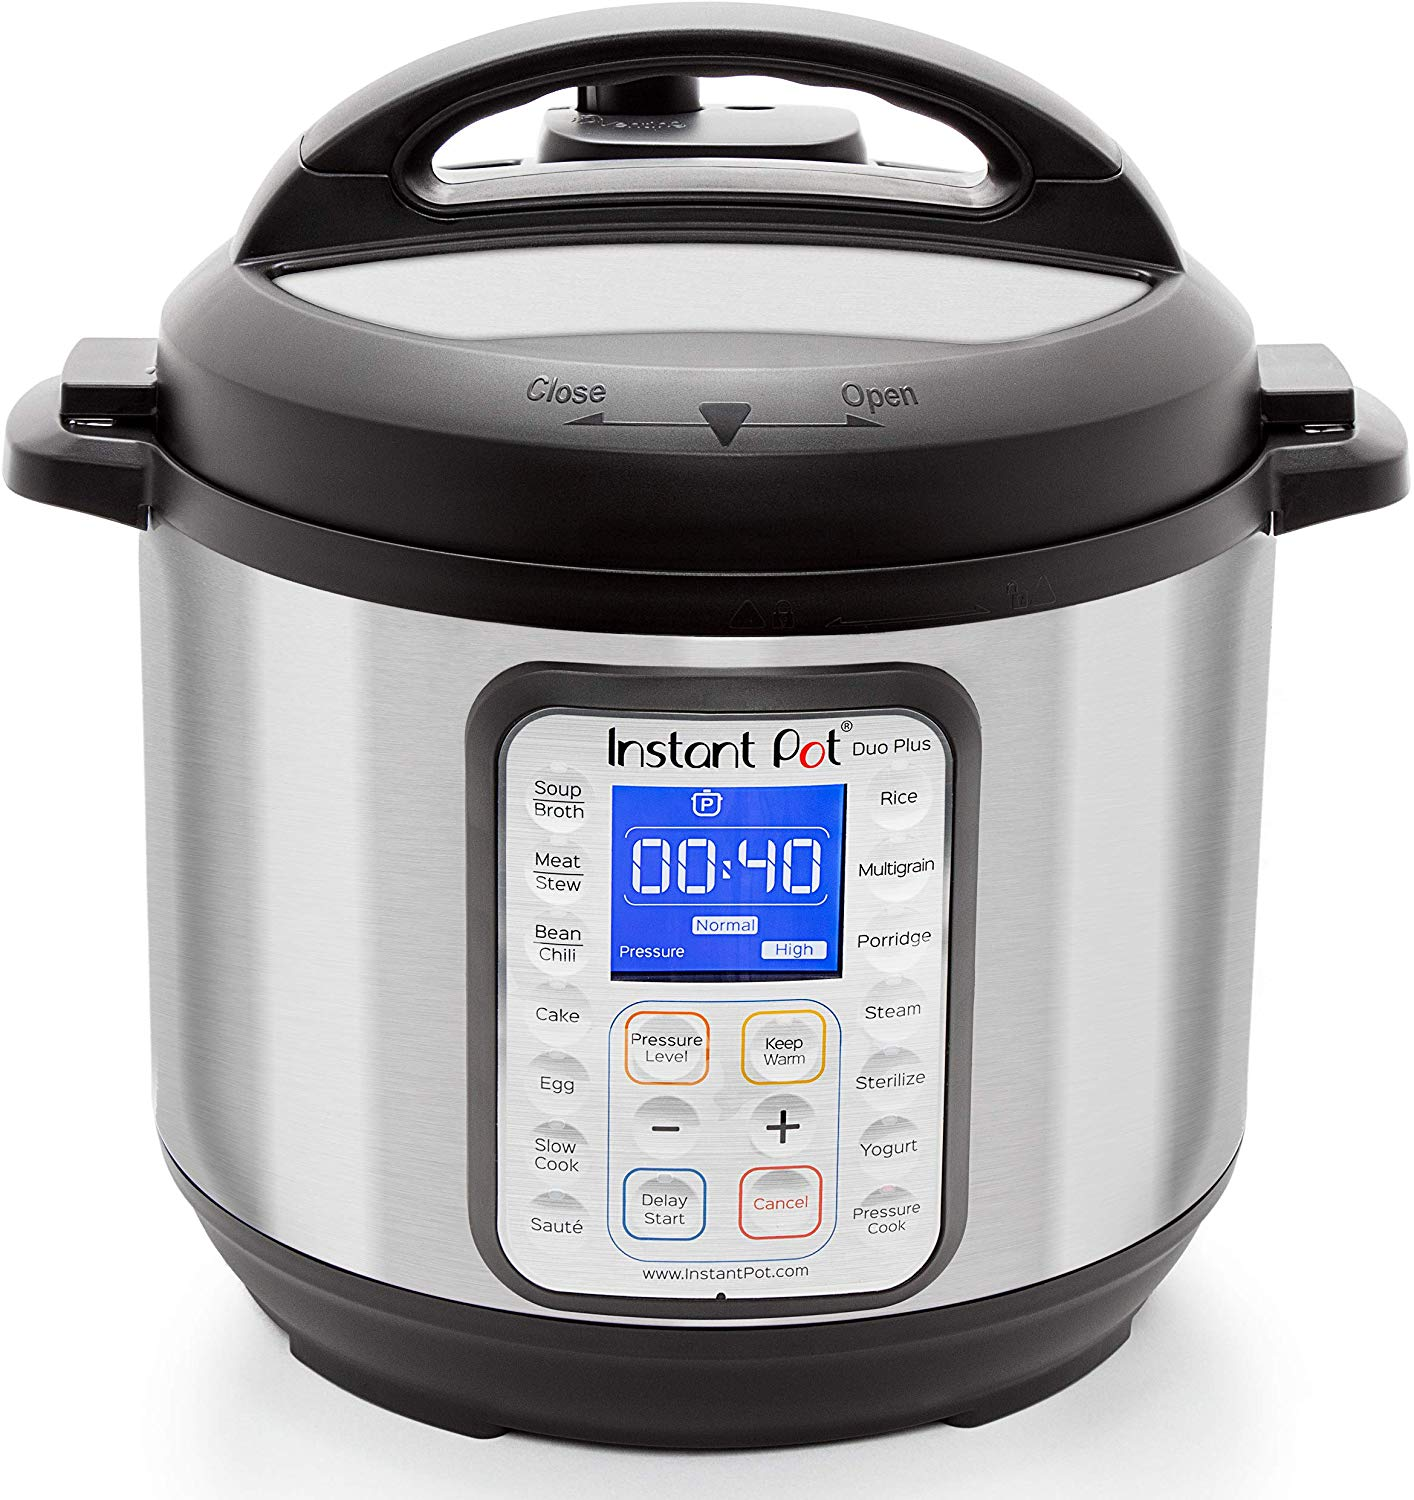 Instant pot duo plus black friday cyber monday